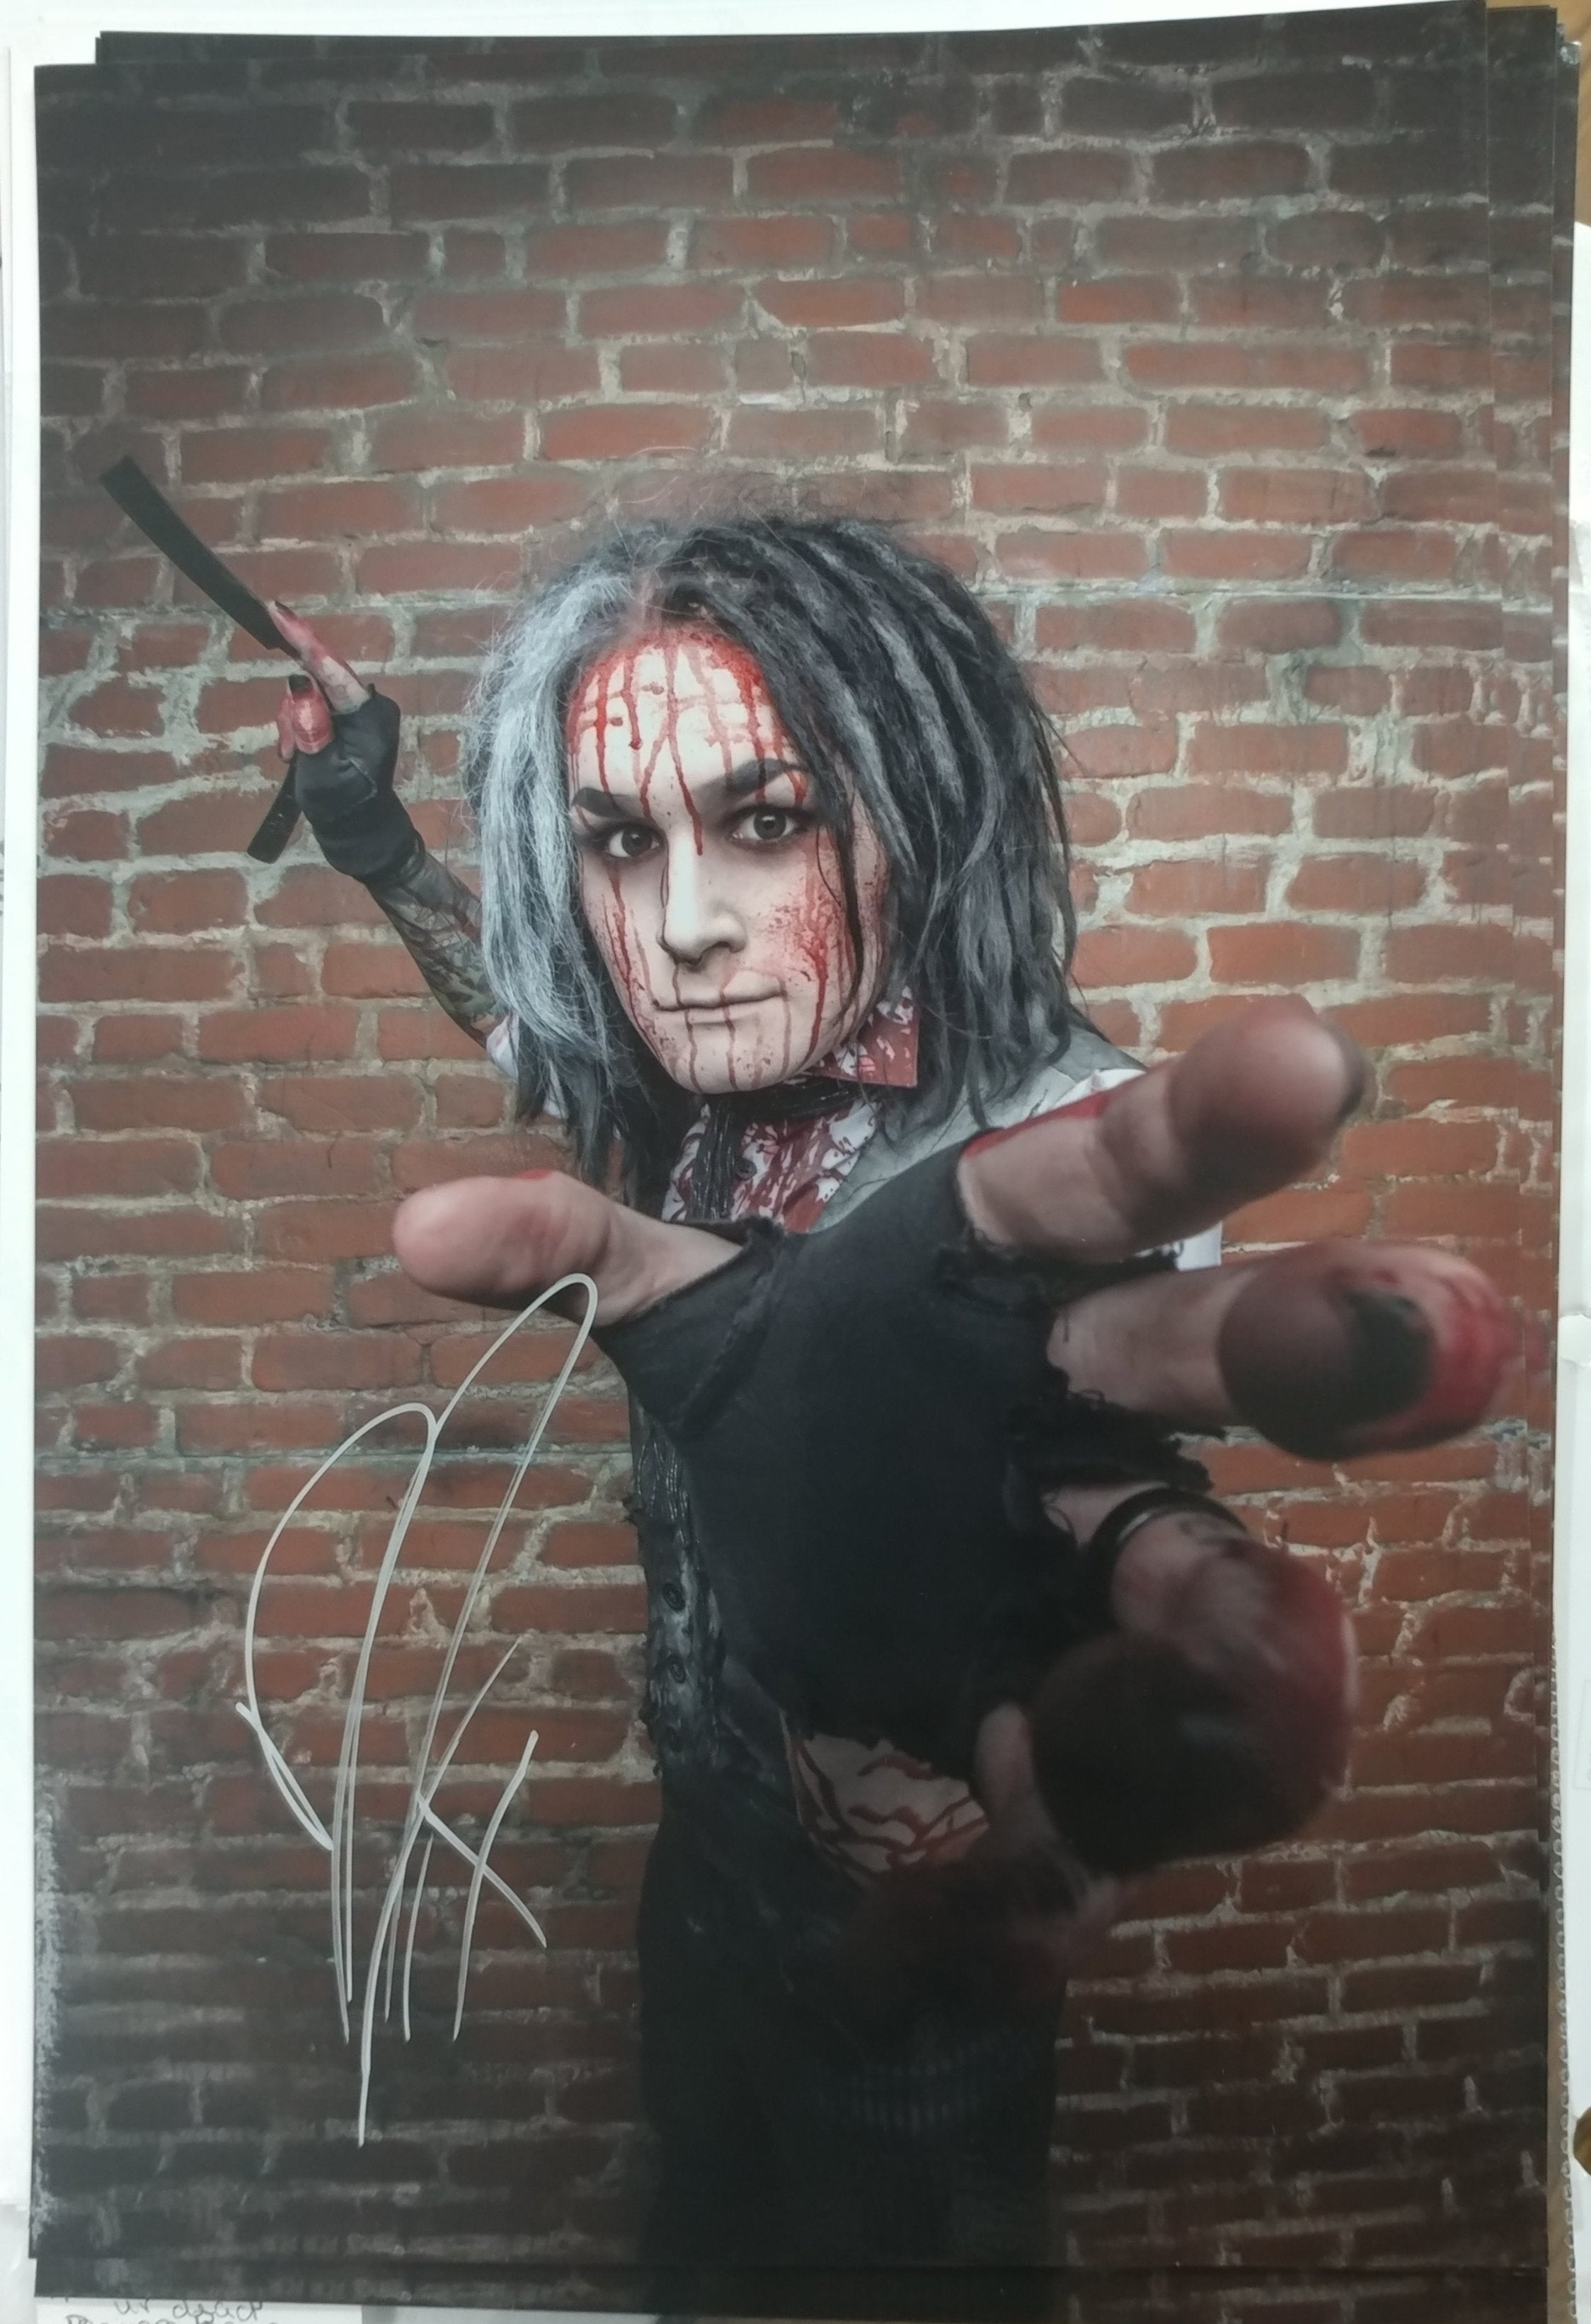 Ghost - Sweeny Todd Grab - signed metallic print (only 5 available)